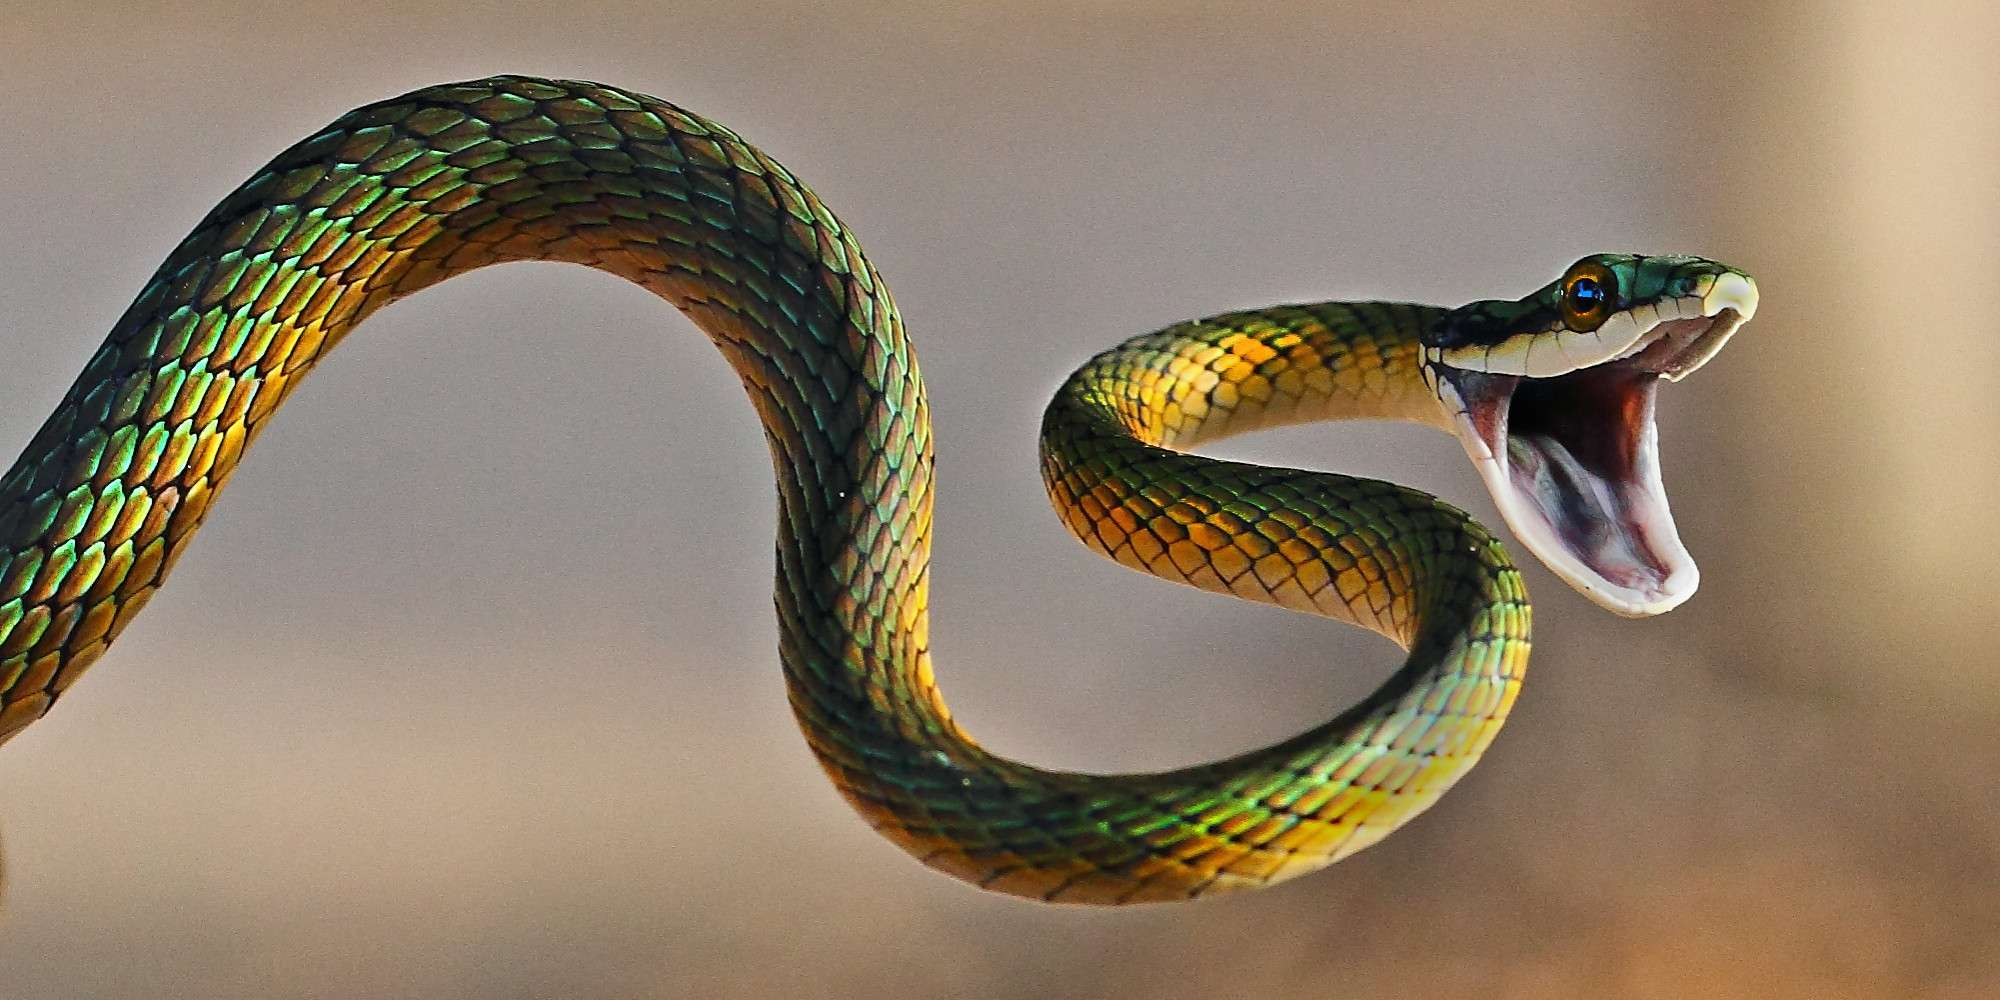 Brightly coloured parrot snake [Image Source]